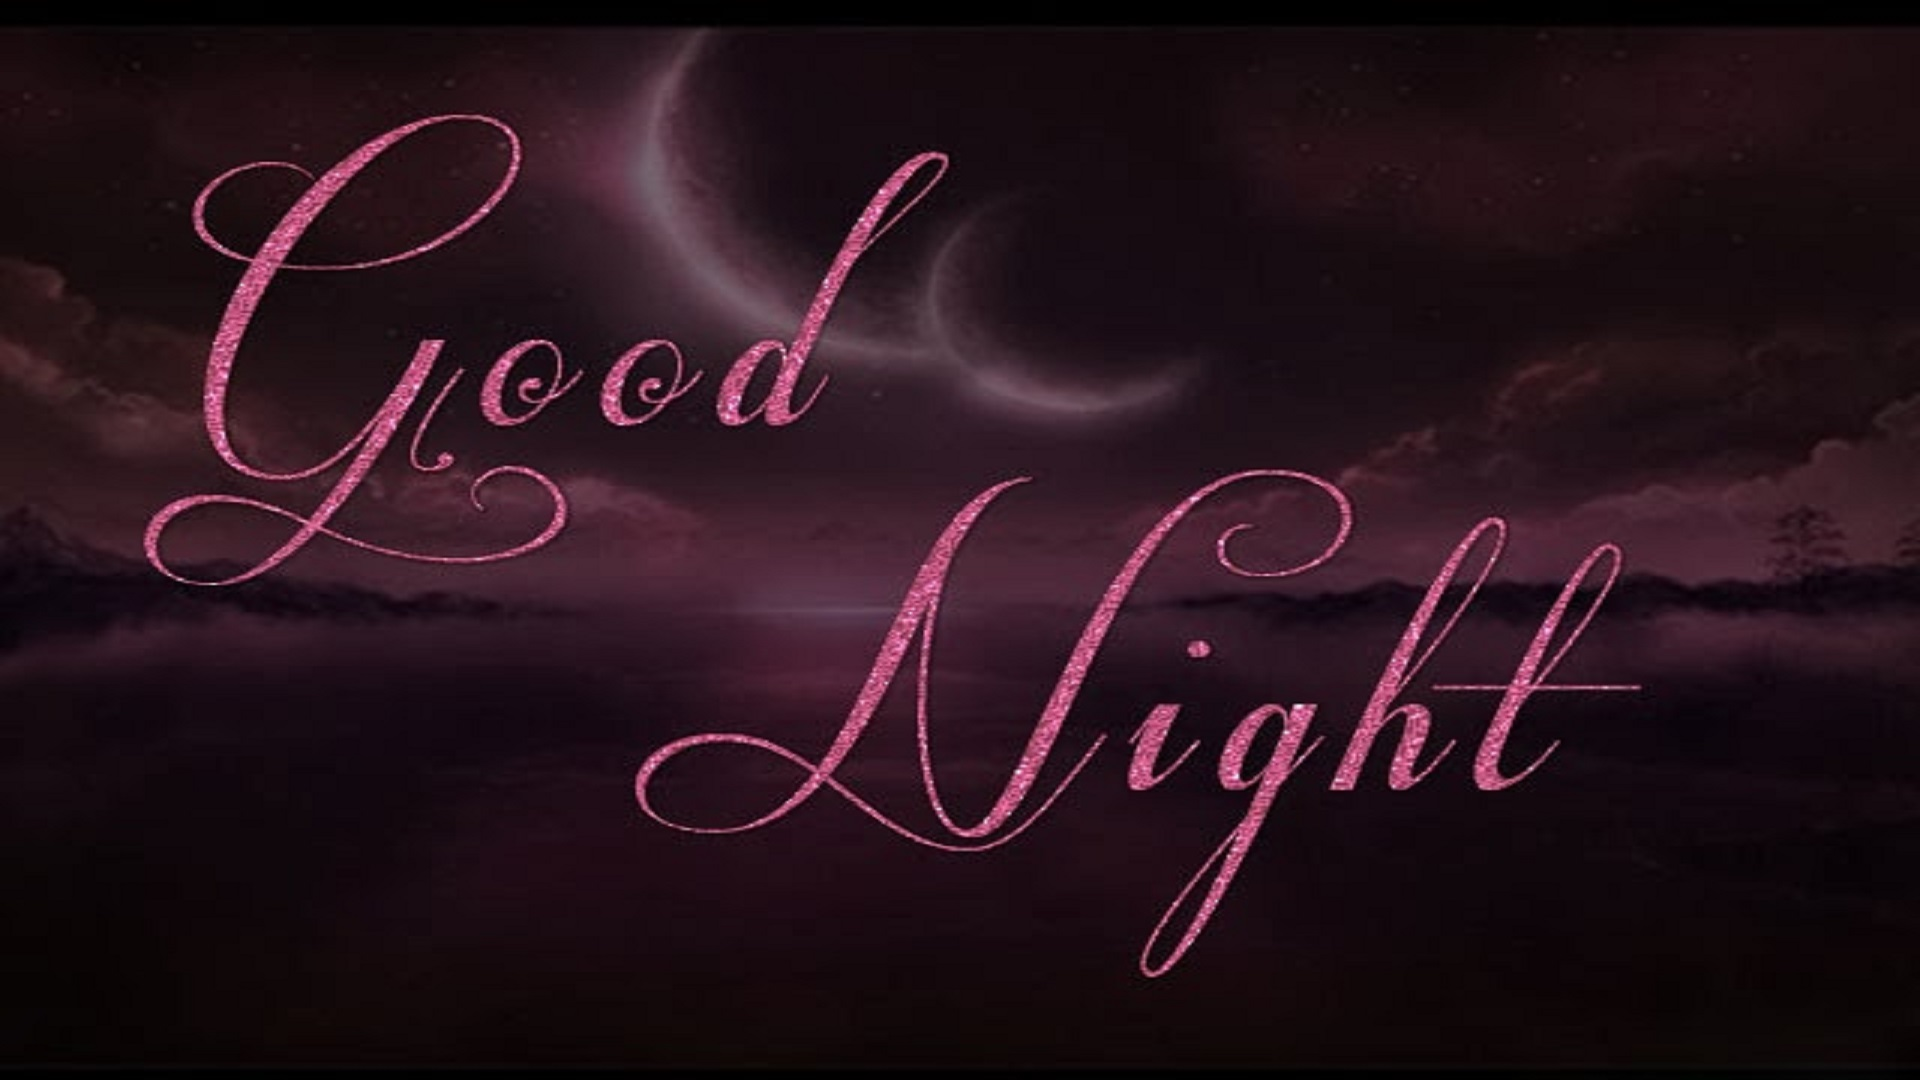 Wallpaper download girl and boy - Good Night Wallpaper For Girl Boy Friends Free